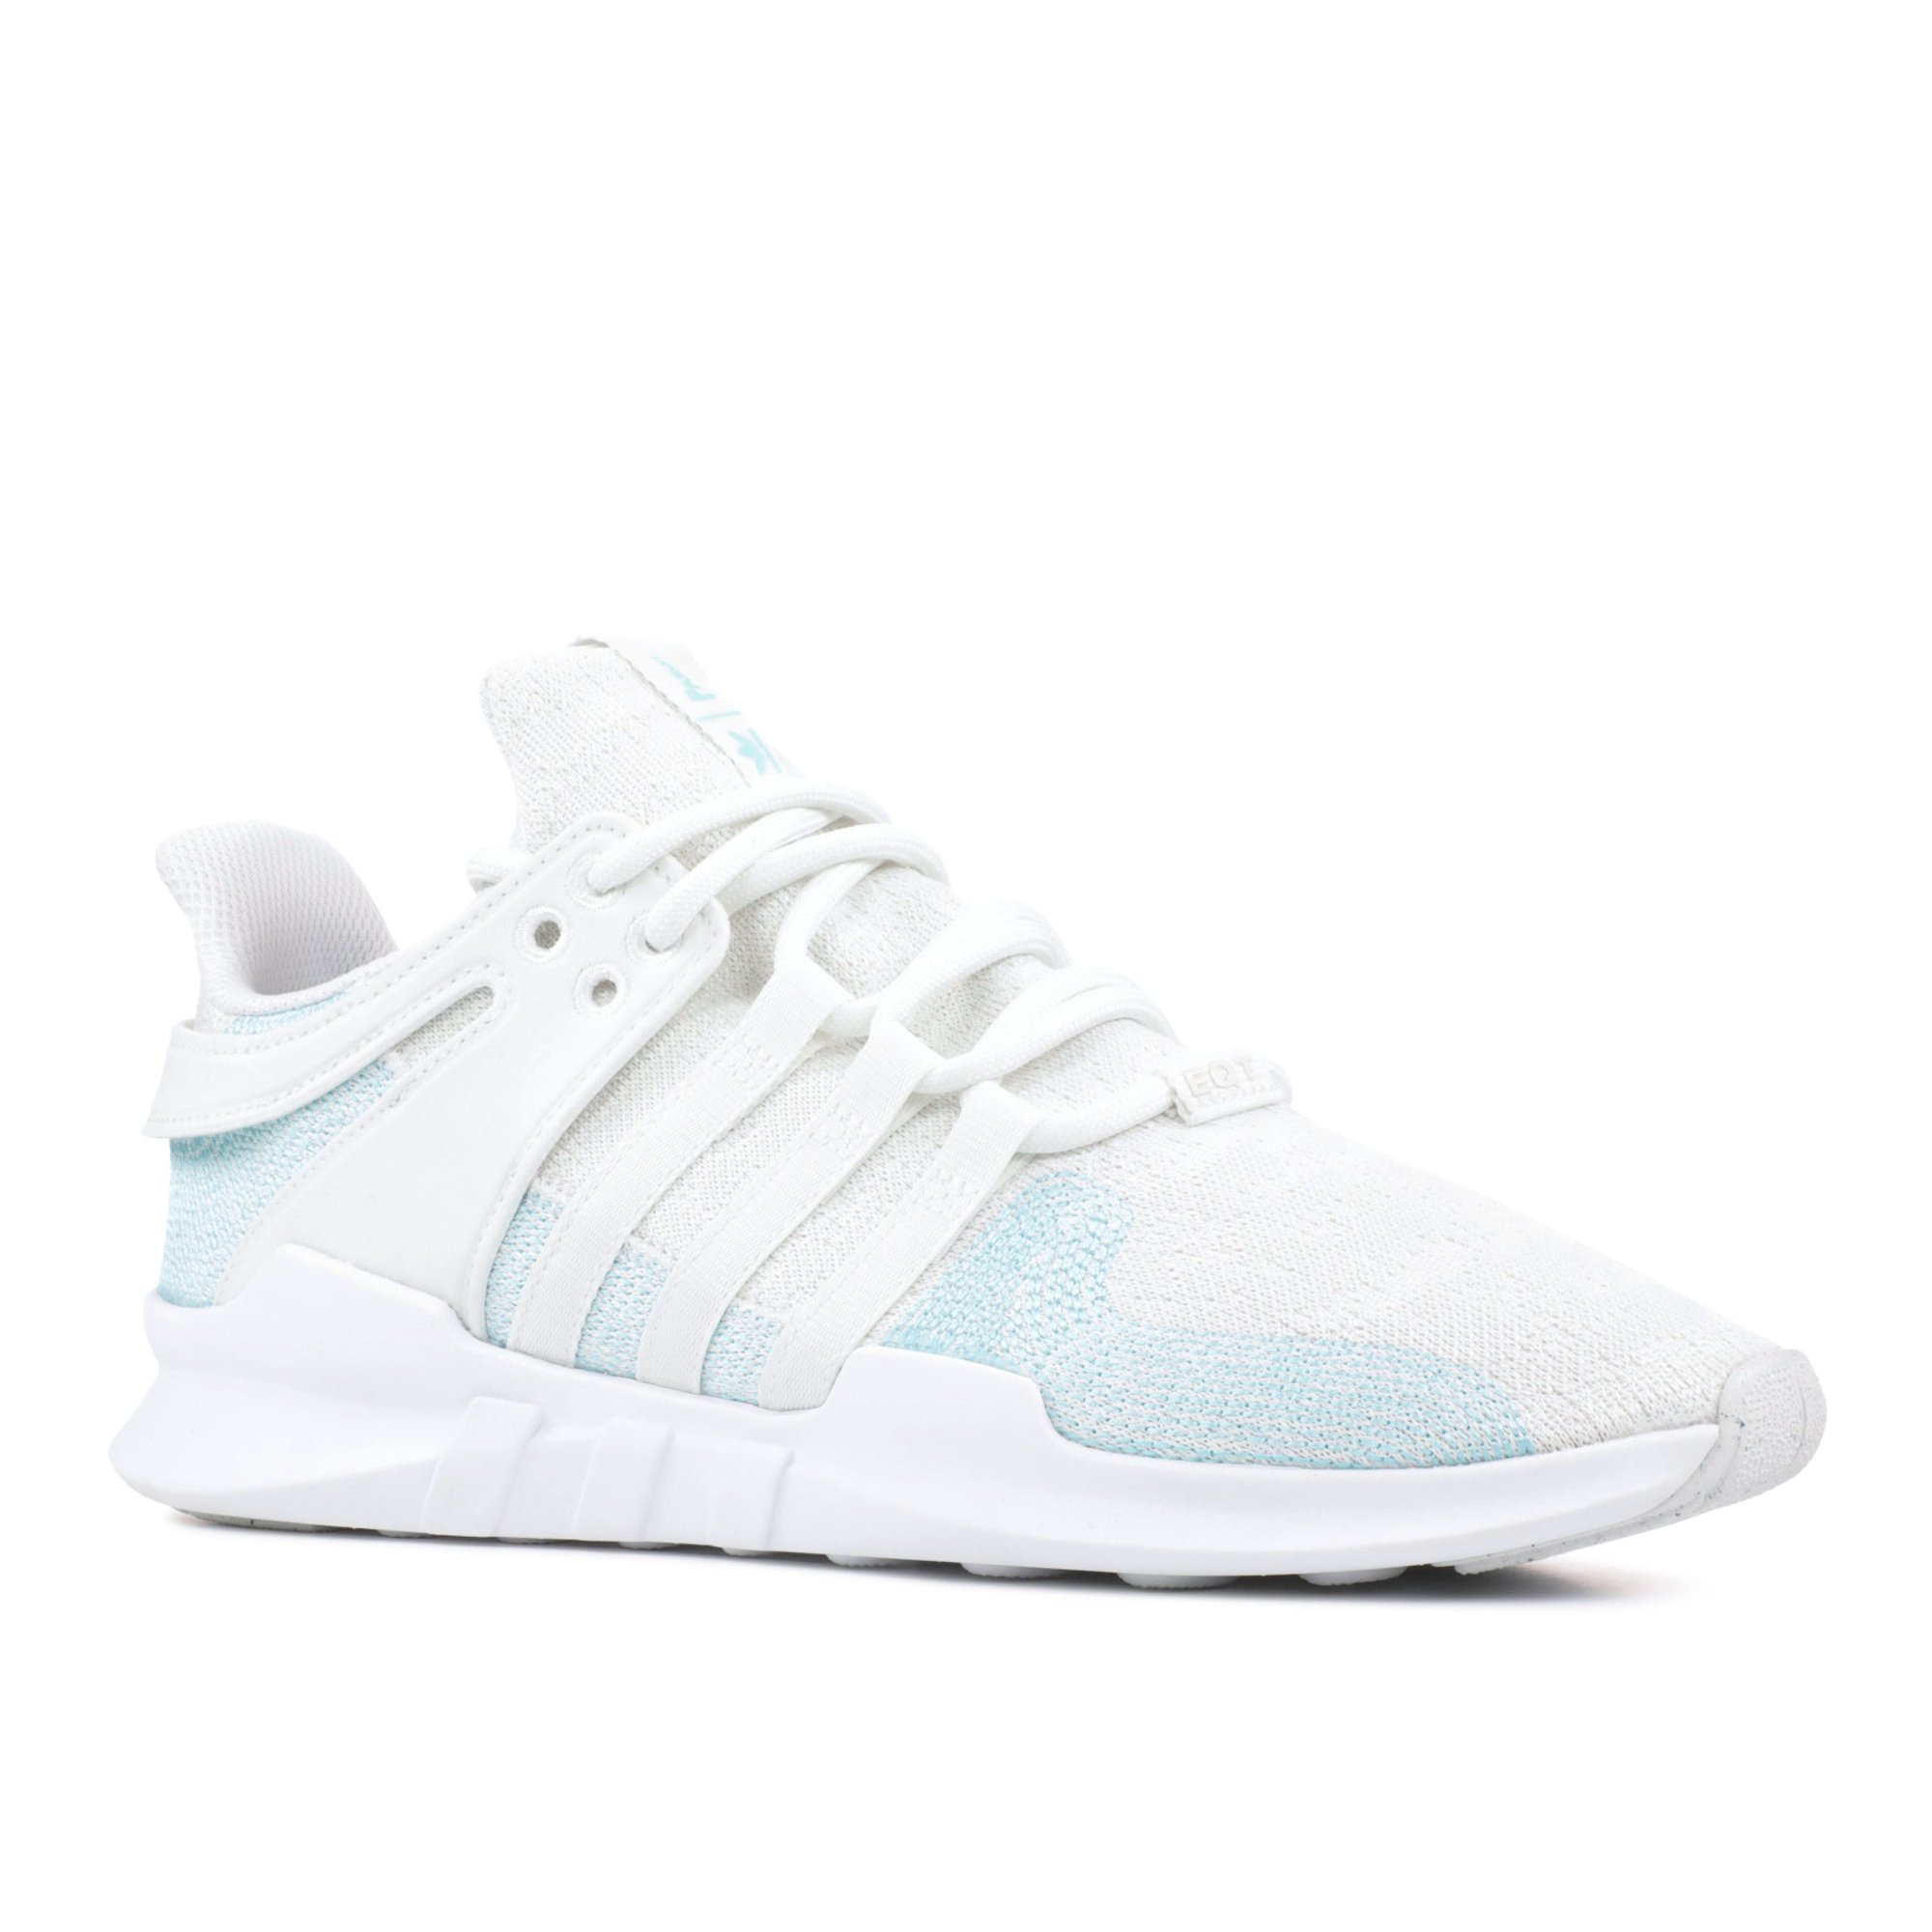 official photos 115ca 5d179 Adidas - Men - Eqt Support Adv Ck Parley 'Parley' - Ac7804 ...